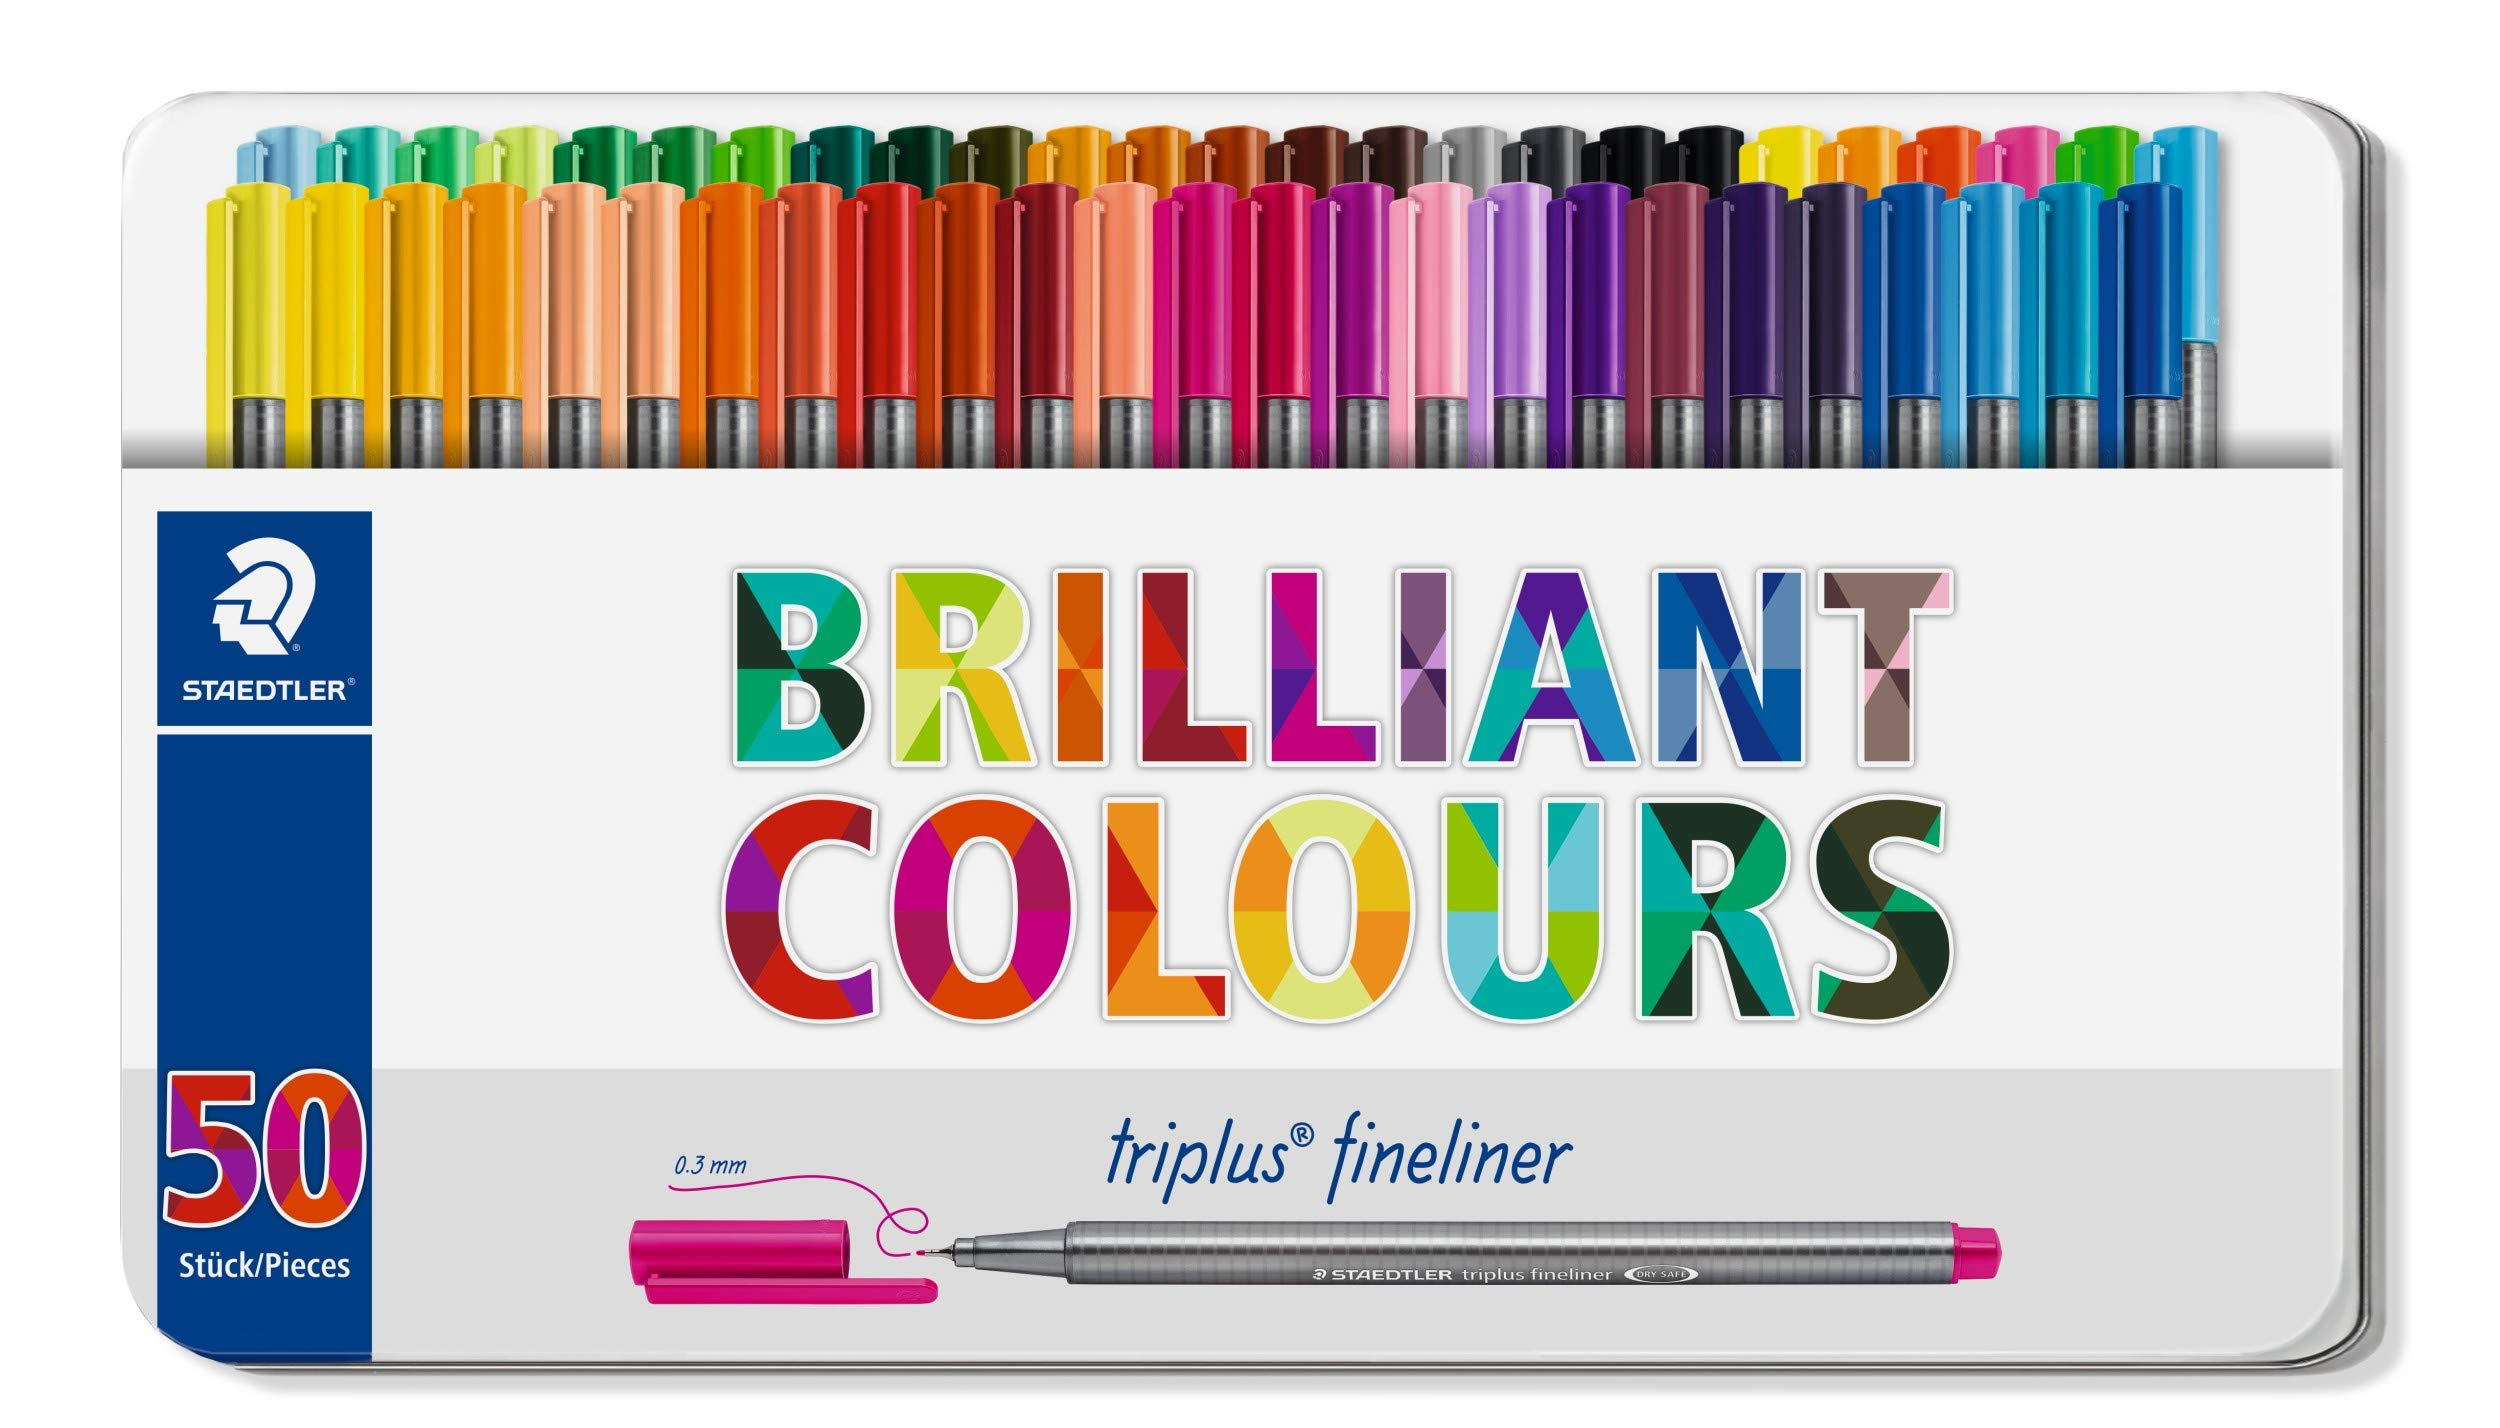 Staedtler Triplus Fineliner Pens, Metal Tin Containing 50 Assorted Colors (334 M50) by STAEDTLER